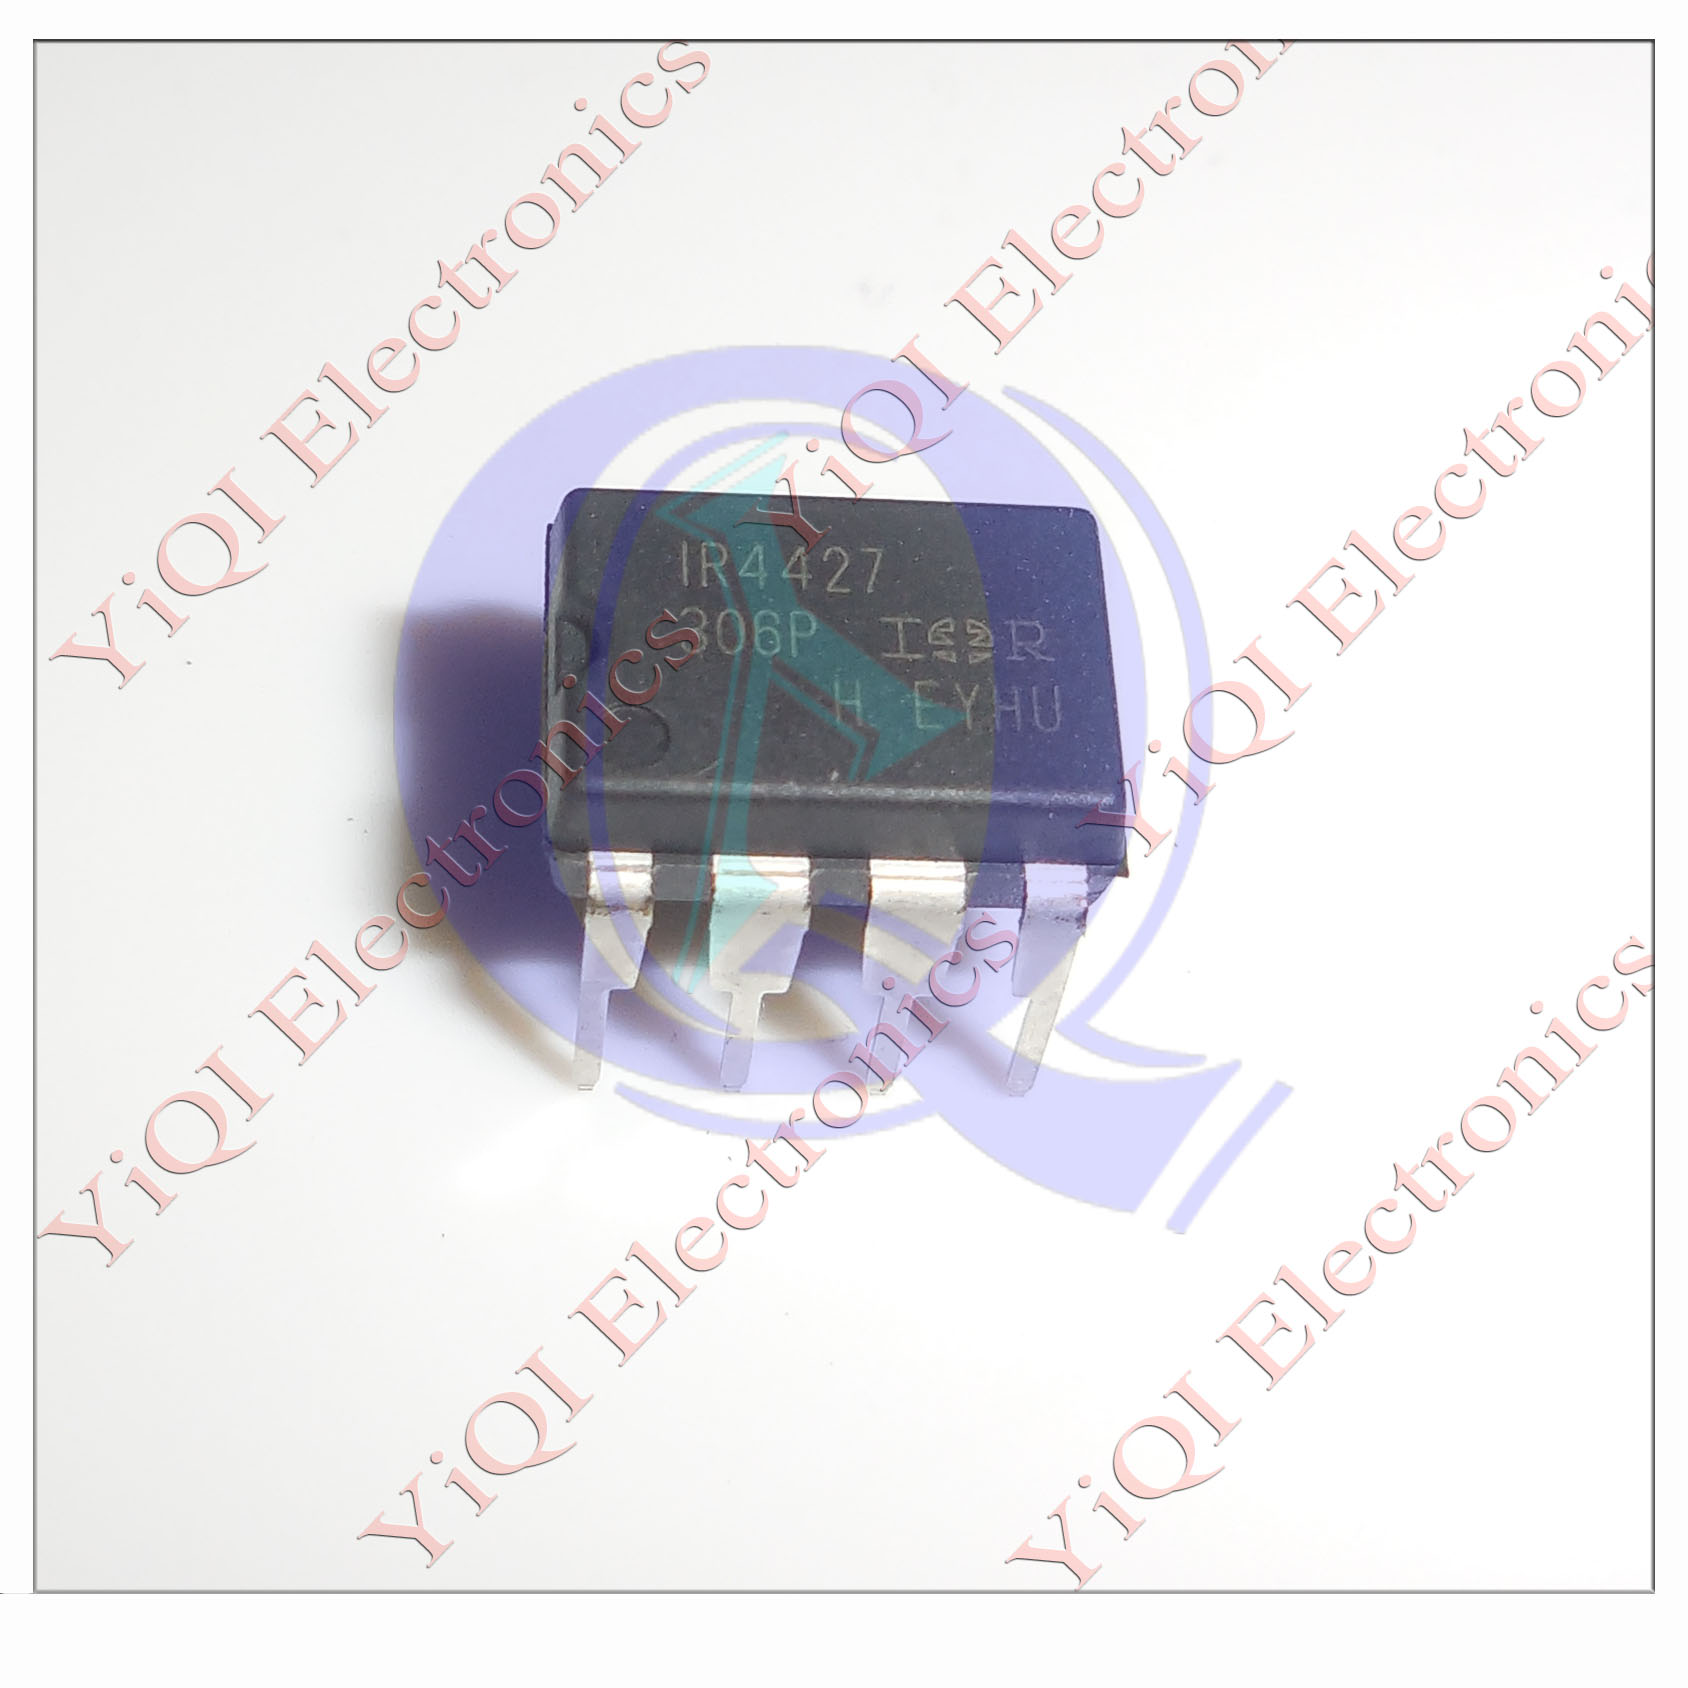 10 pieces = IR4427PBF IR4427 DIP8 DUAL LOW SIDE DRIVER - YiQi International Electronics Company store